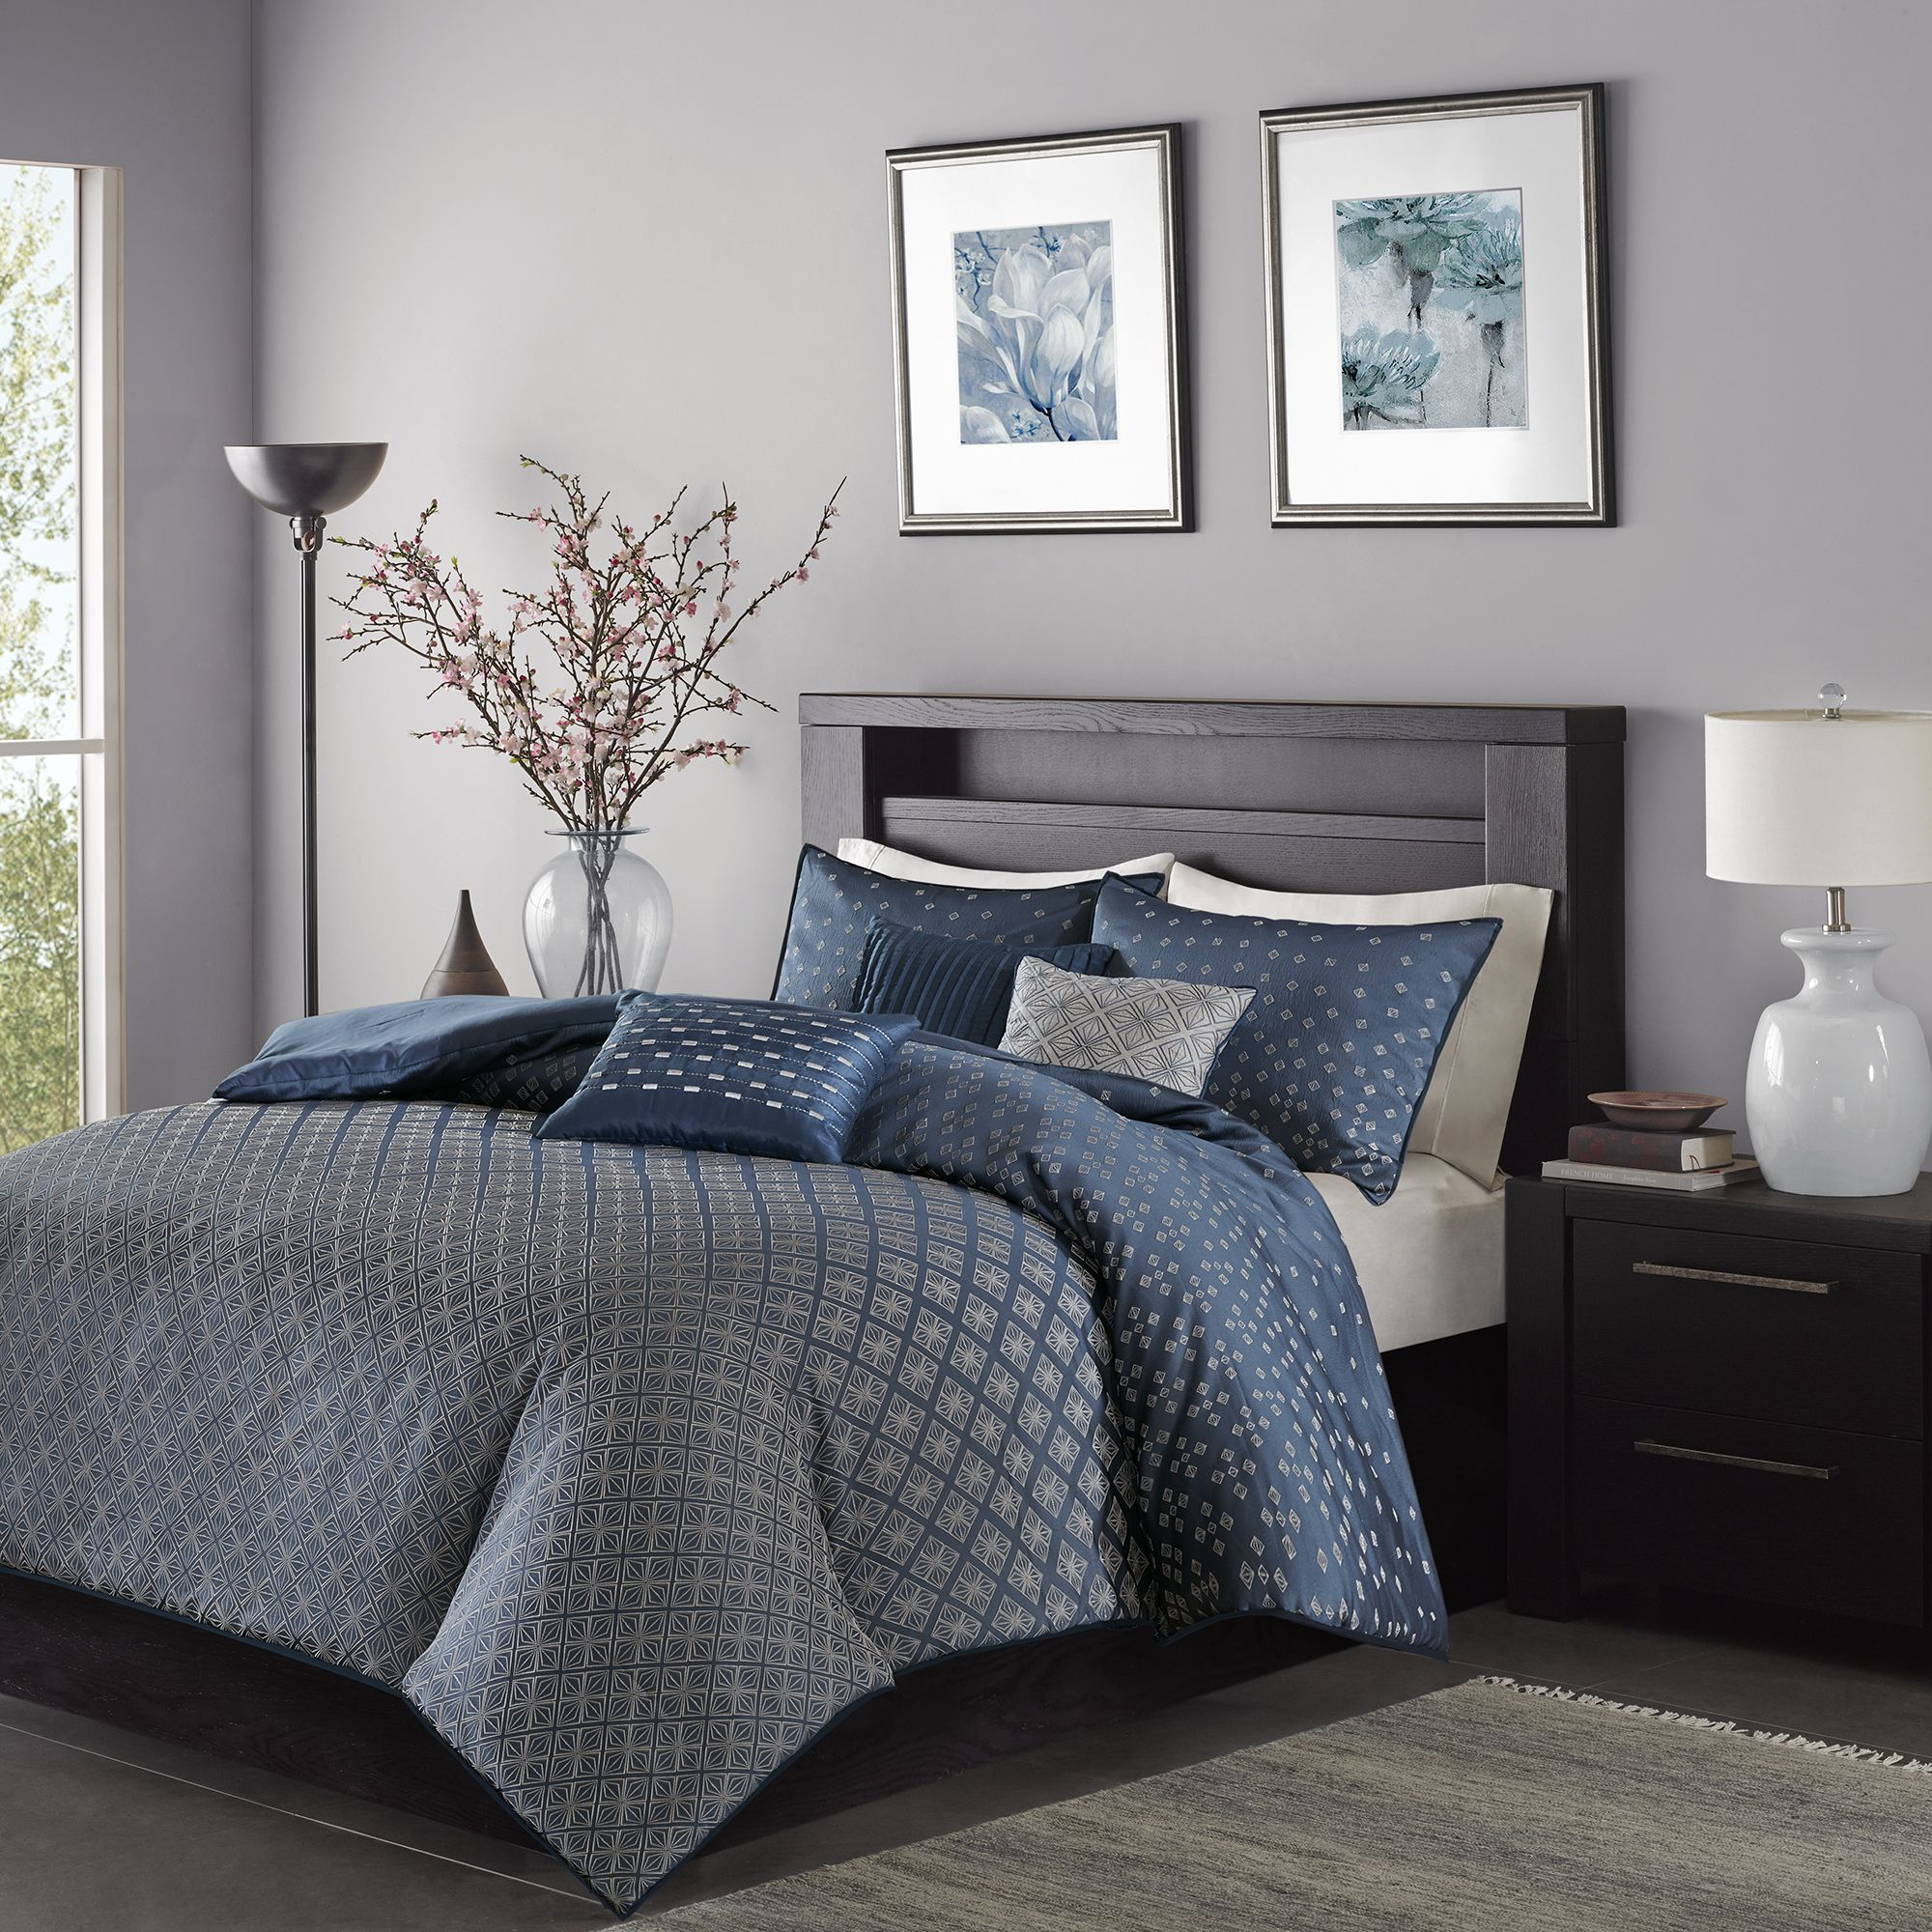 Madison park morris navy piece duvet cover set bedroom